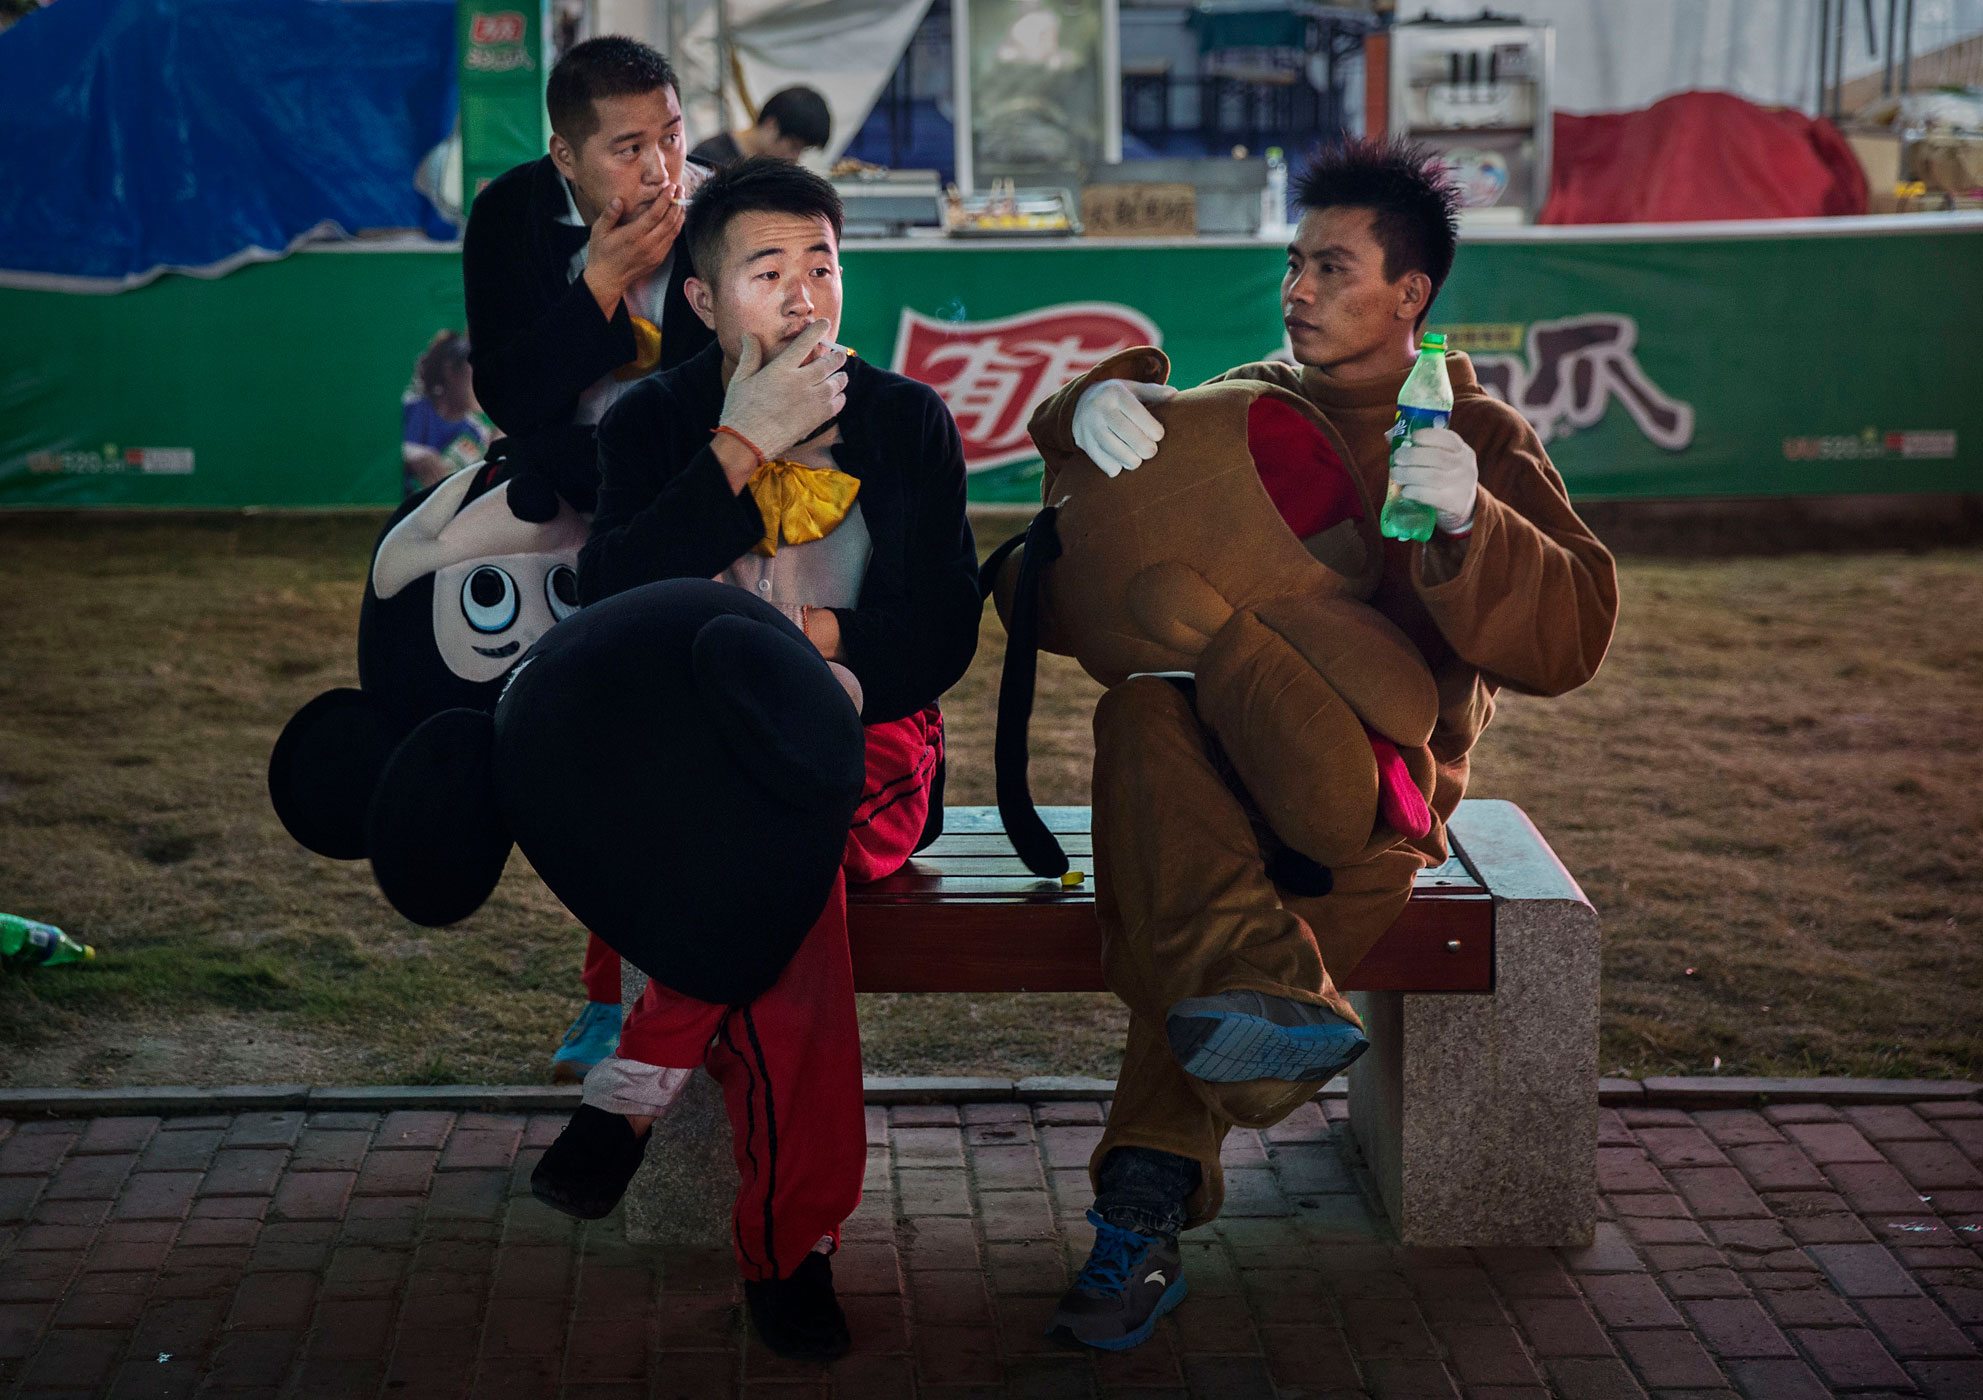 Chinese men take a smoke break during the 24th Annual Qingdao International Beer Festival on August 20, 2014 in Qingdao, China.